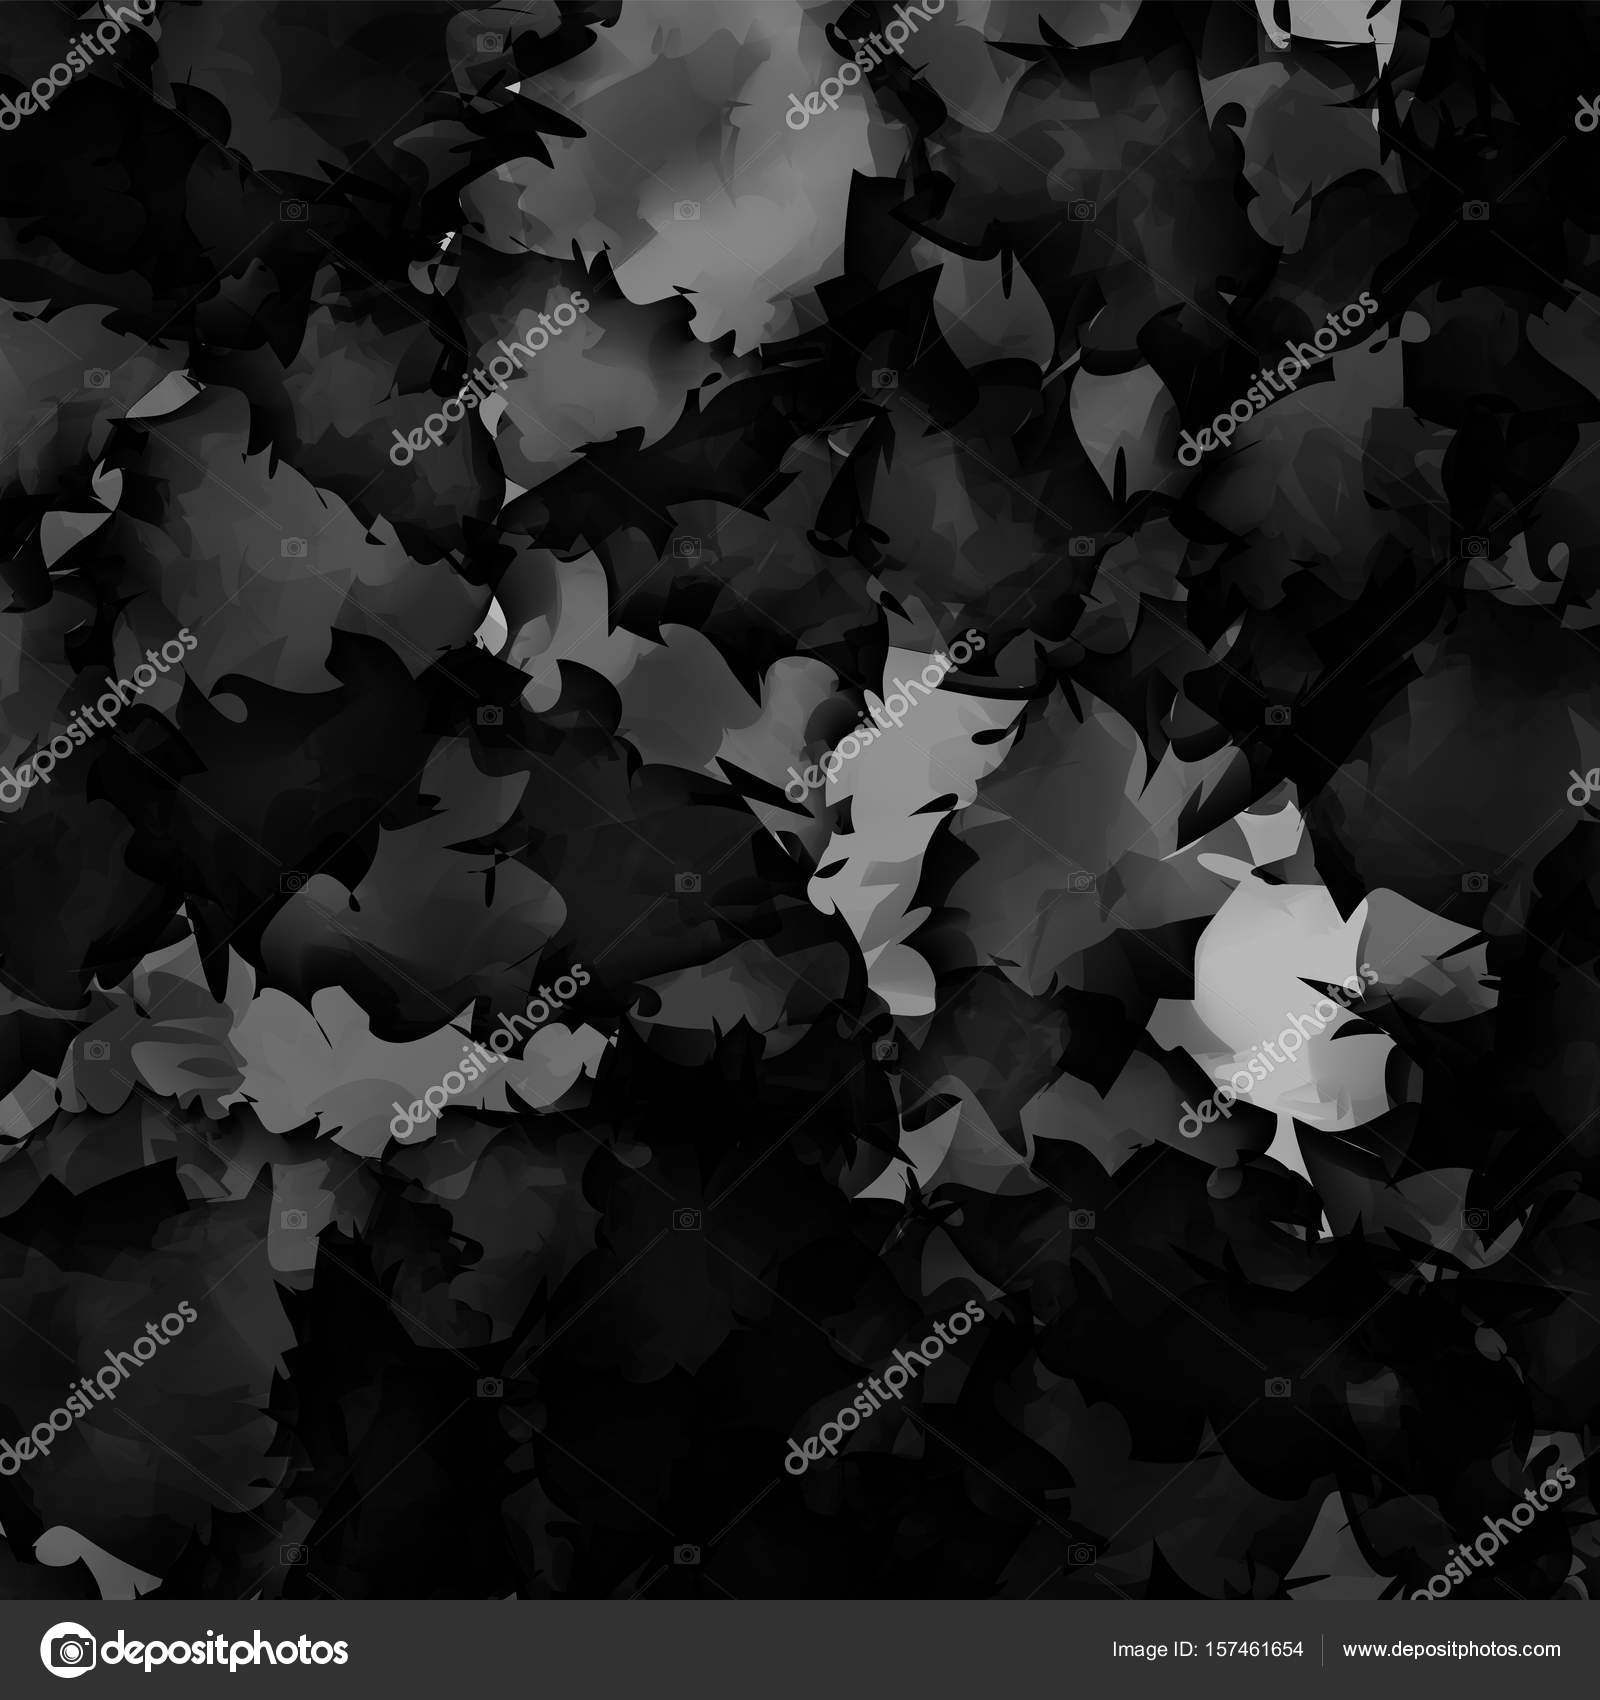 Dark black and white watercolor texture background classy abstract dark black and white watercolor stock illustration